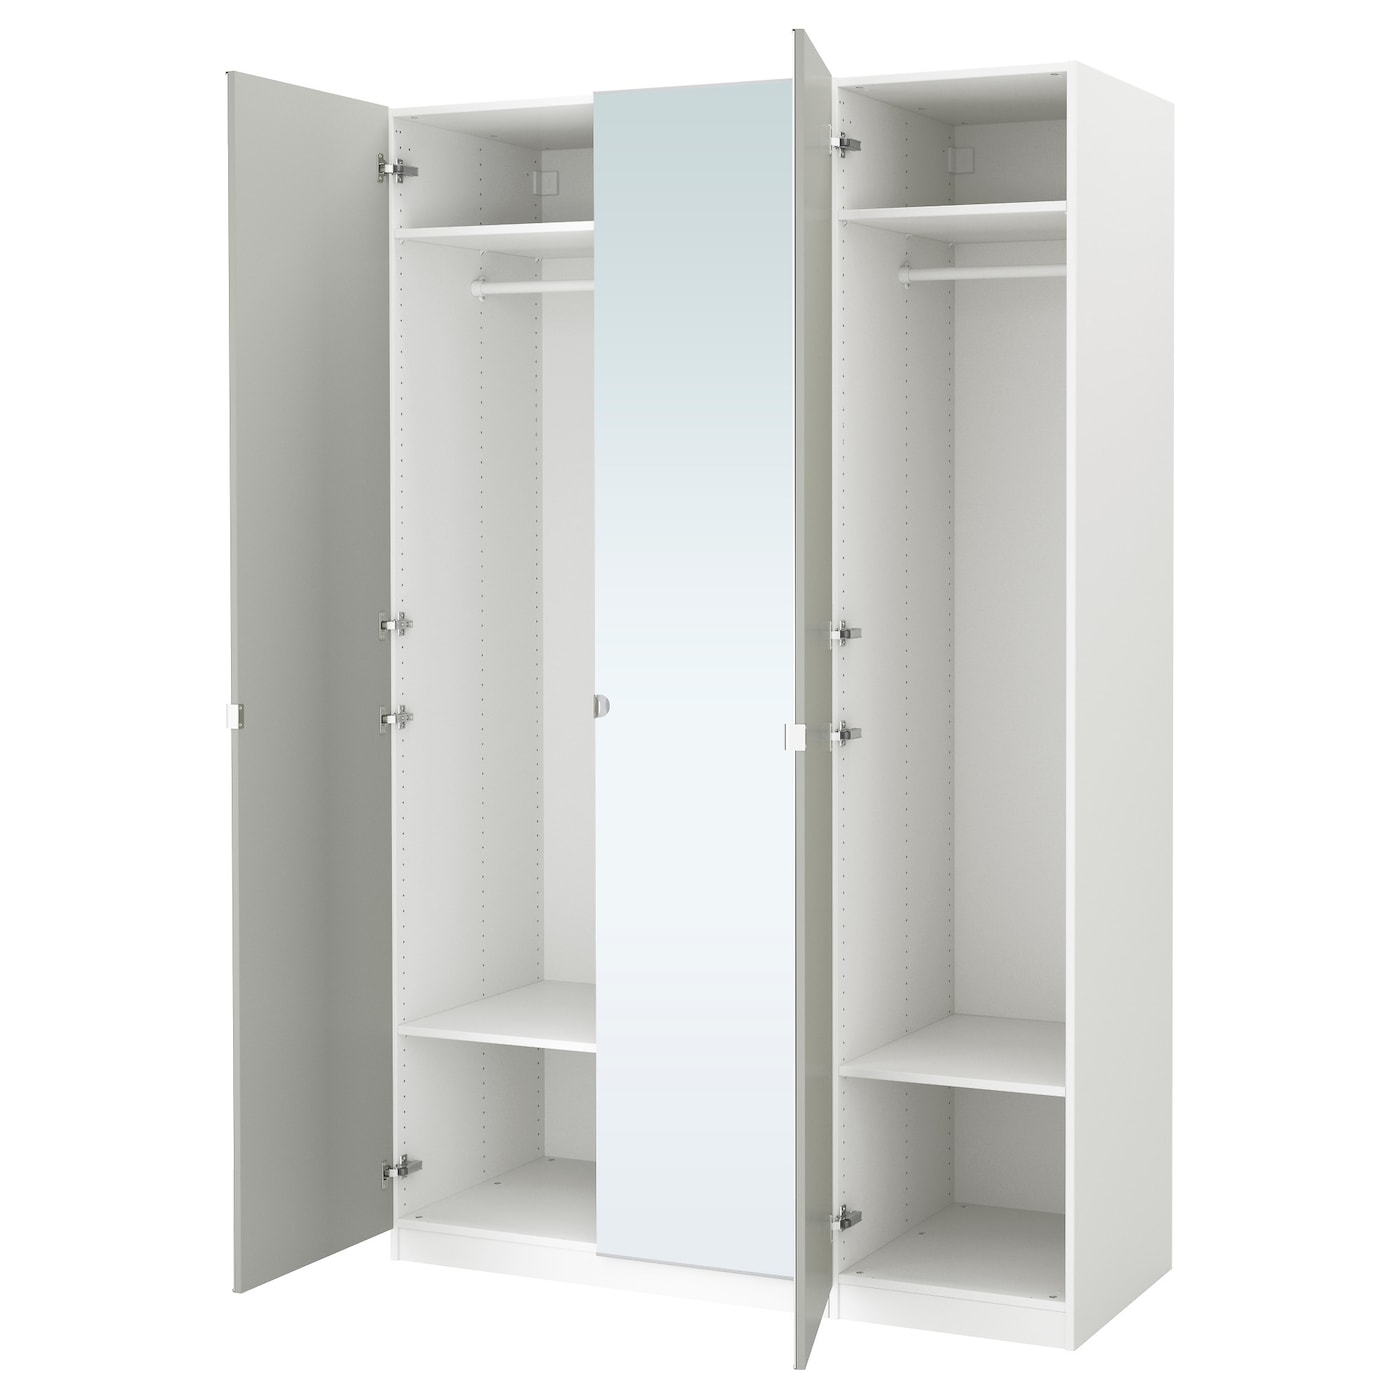 Pax wardrobe white vikedal mirror glass 150x60x236 cm ikea for Porte miroir ikea